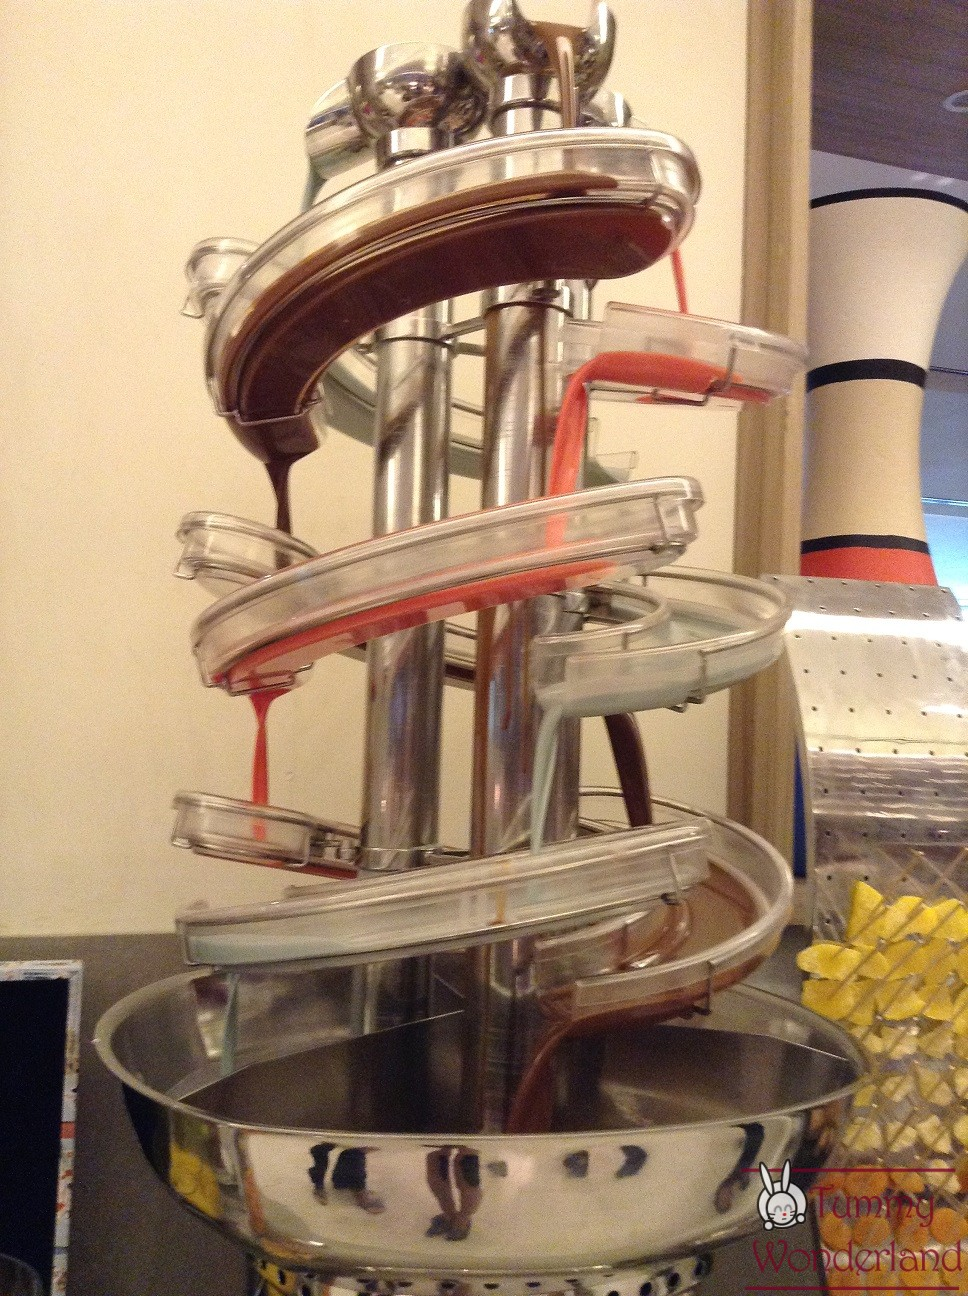 novotel_chocofountain